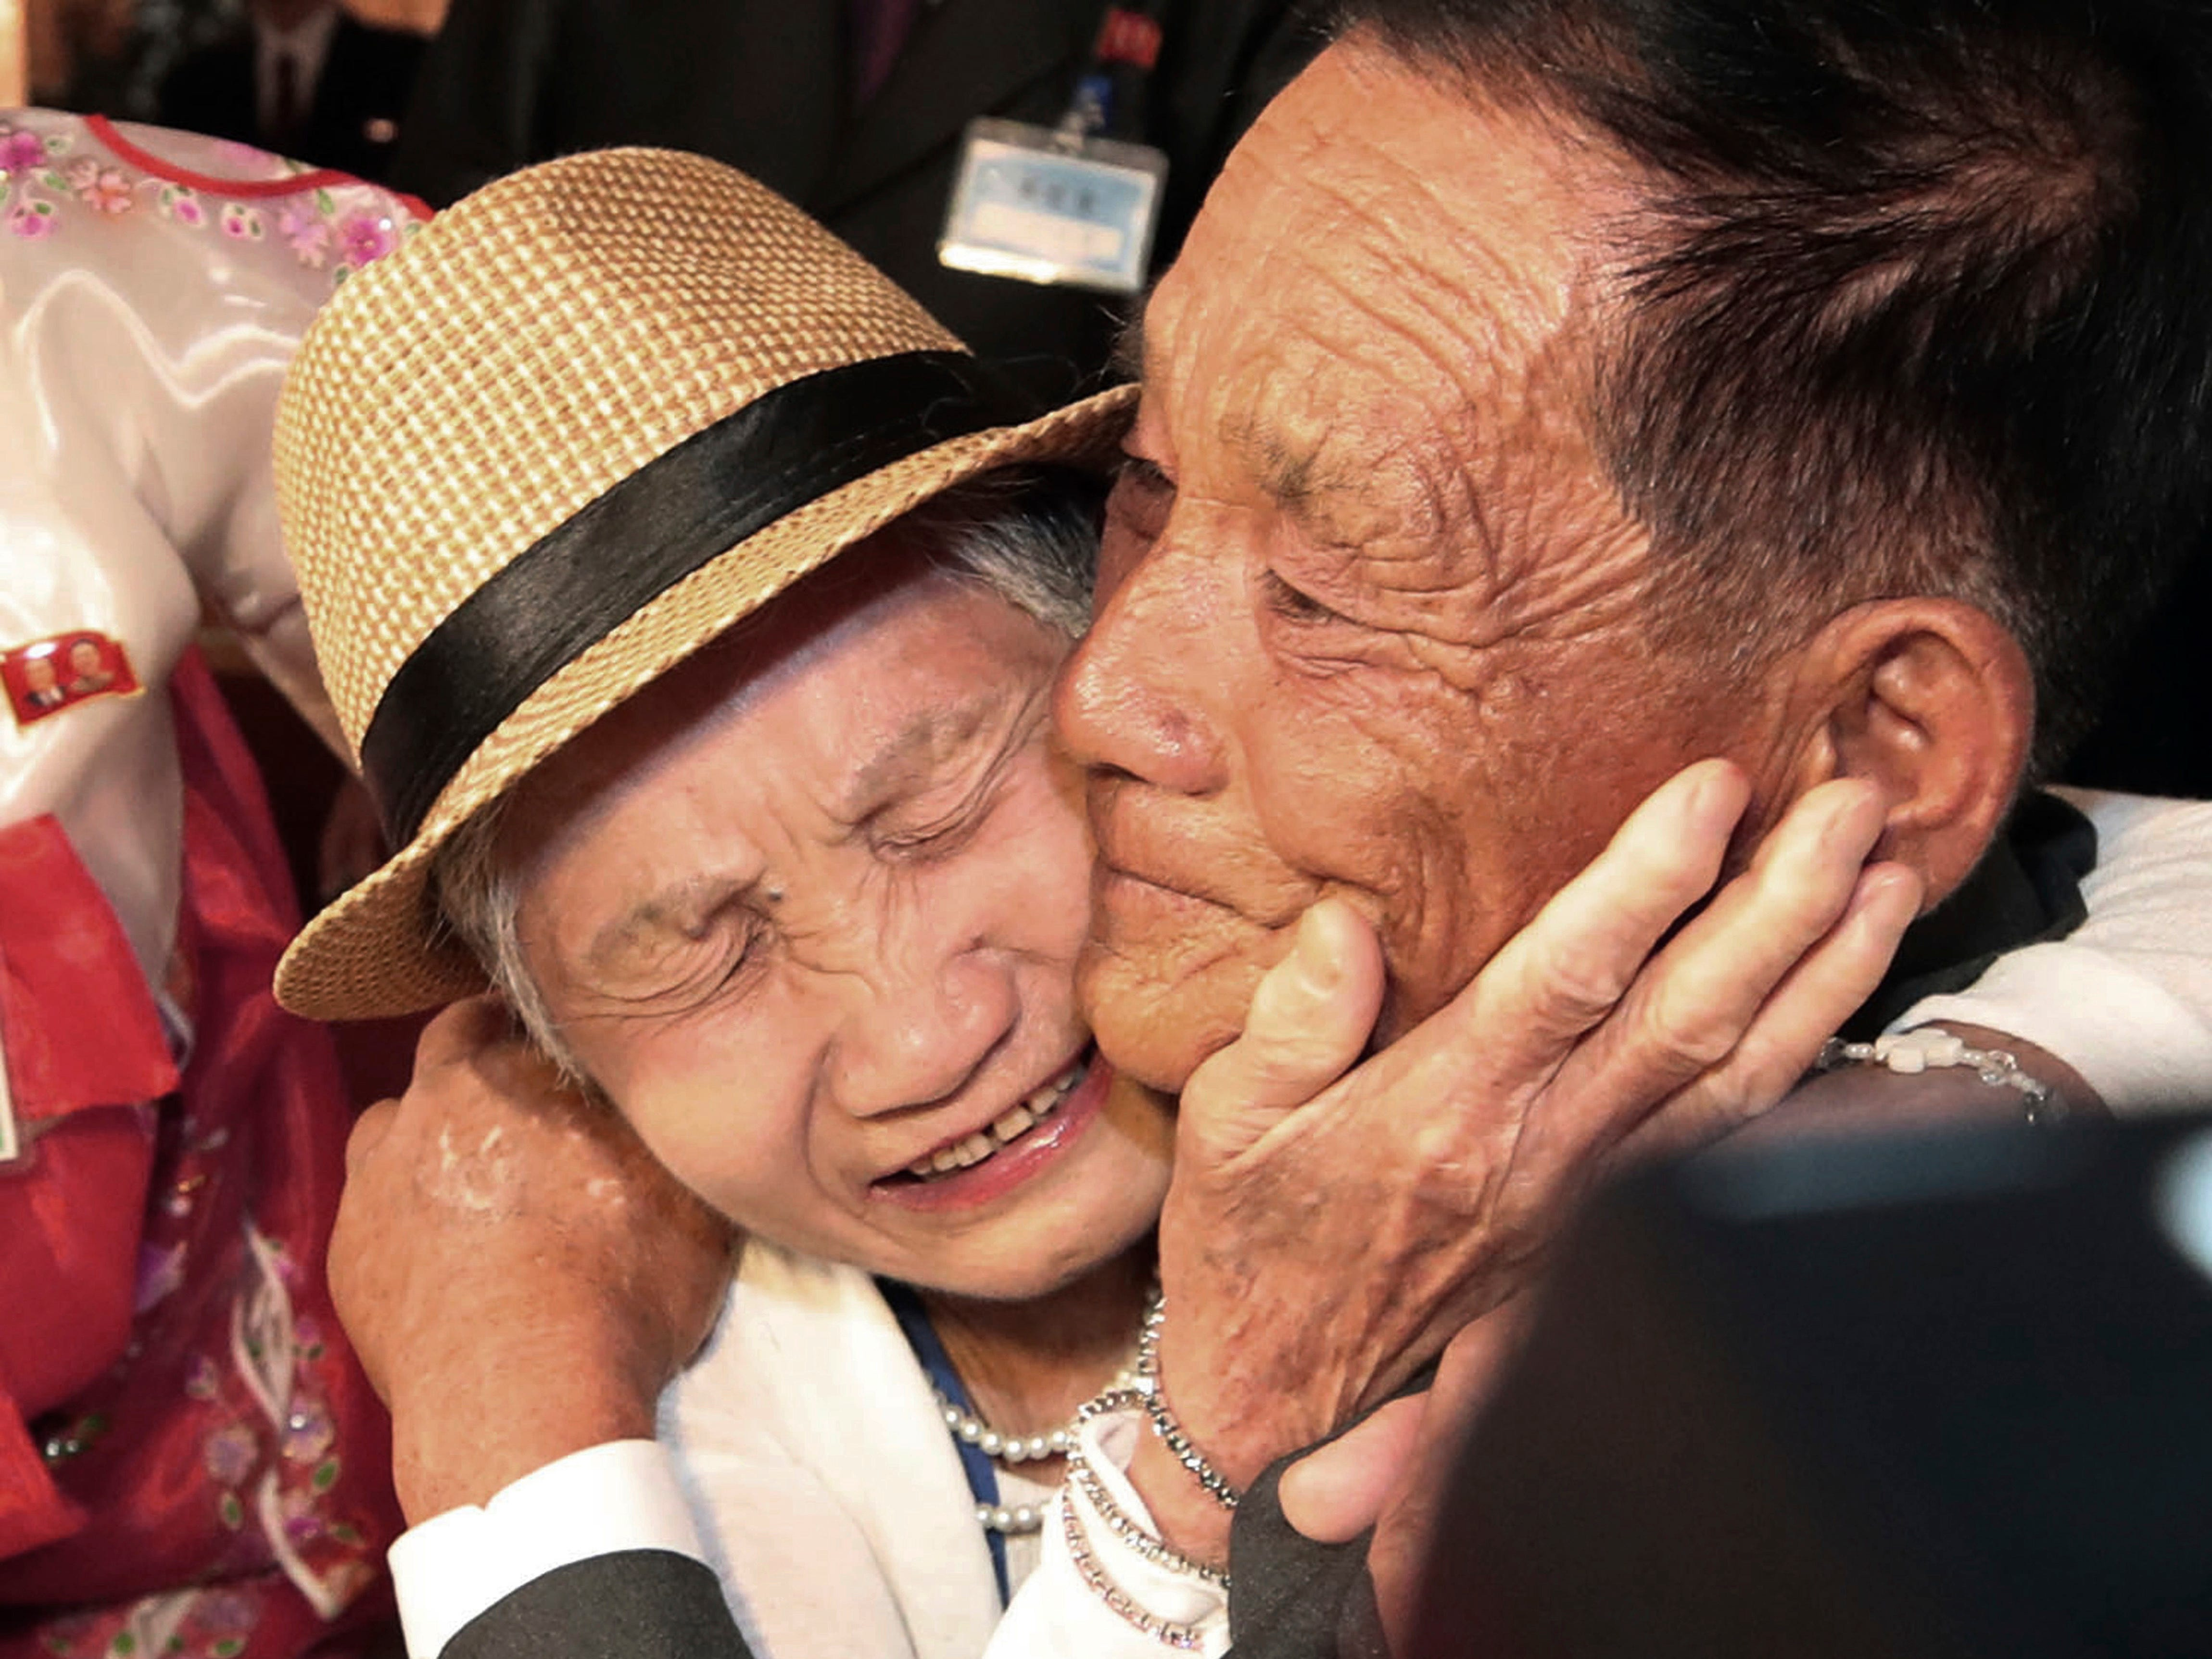 South Korean Lee Keum-seom, 92, weeps with her North Korean son, Ri Sang Chol, 71, during the Separated Family Reunion Meeting at the Diamond Mountain resort in North Korea on Aug. 20, 2018. Dozens of elderly South Koreans crossed the heavily fortified border into North Korea for heart-wrenching meetings with relatives most haven't seen since they were separated by the turmoil of the Korean War.